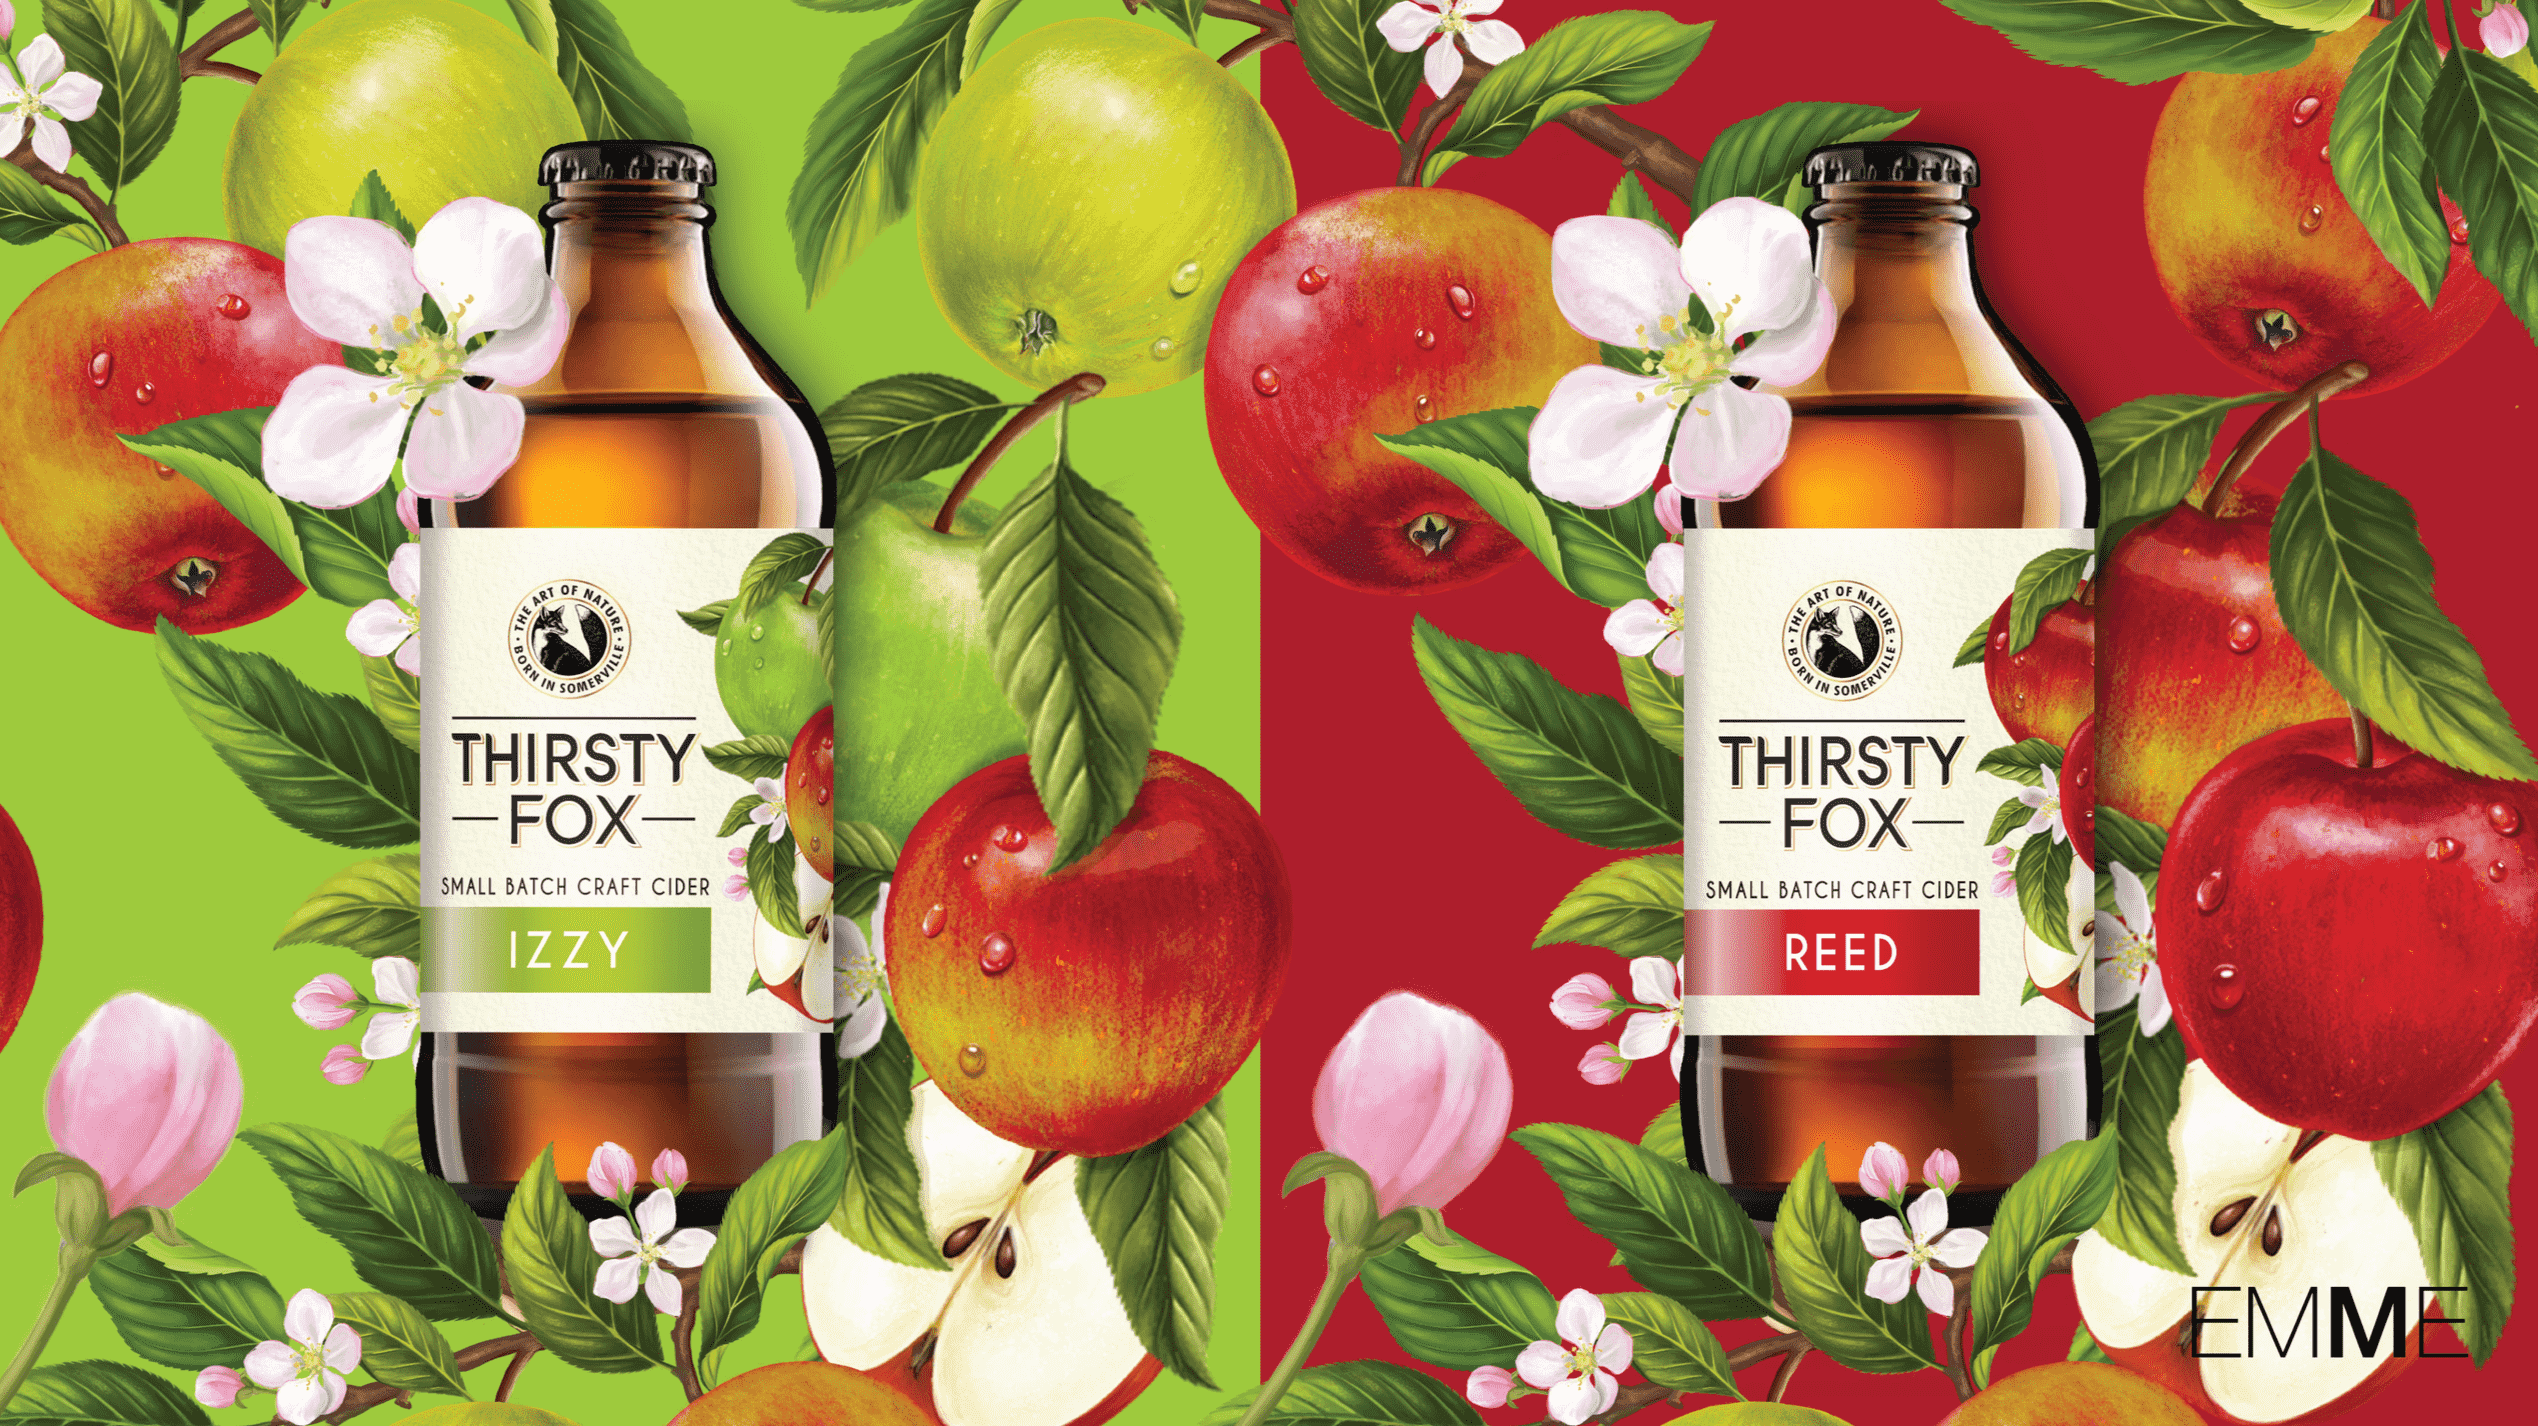 EMME creates Labels India's First Craft Cider